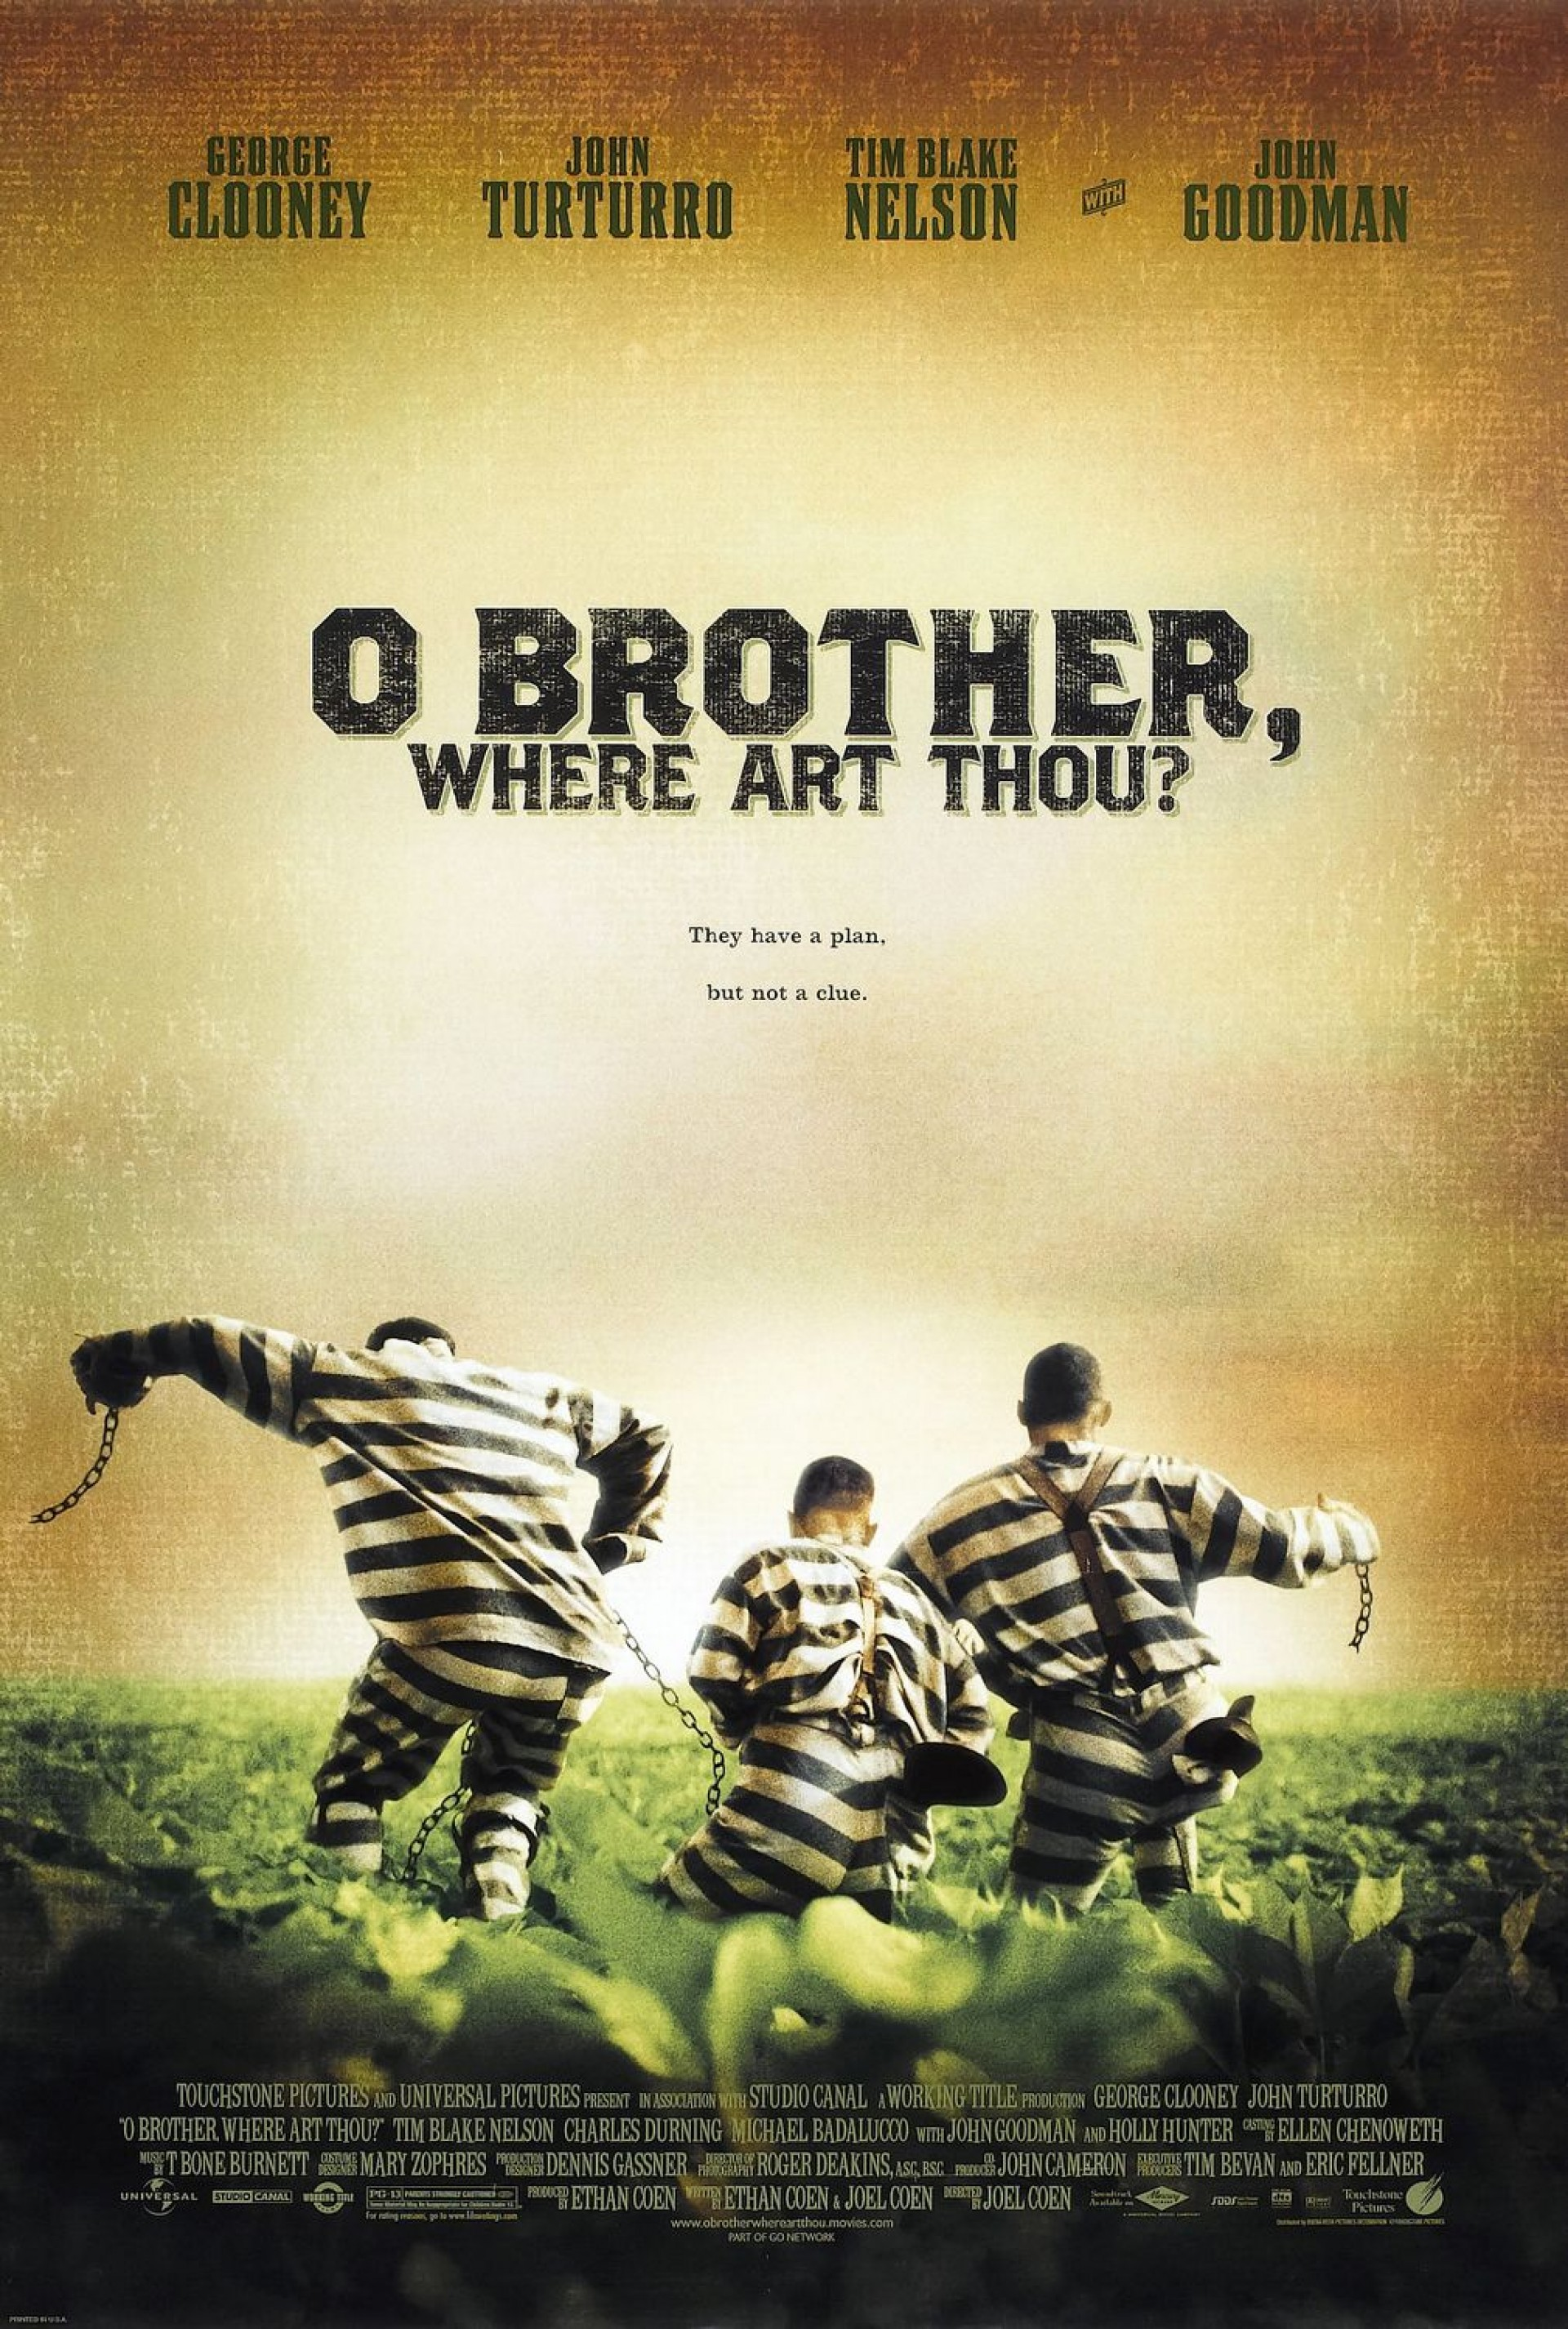 006 O Brother Where Art Thou Essay Example Ver1 Xlg Striking And The Odyssey Comparison Vs Compared To 1920